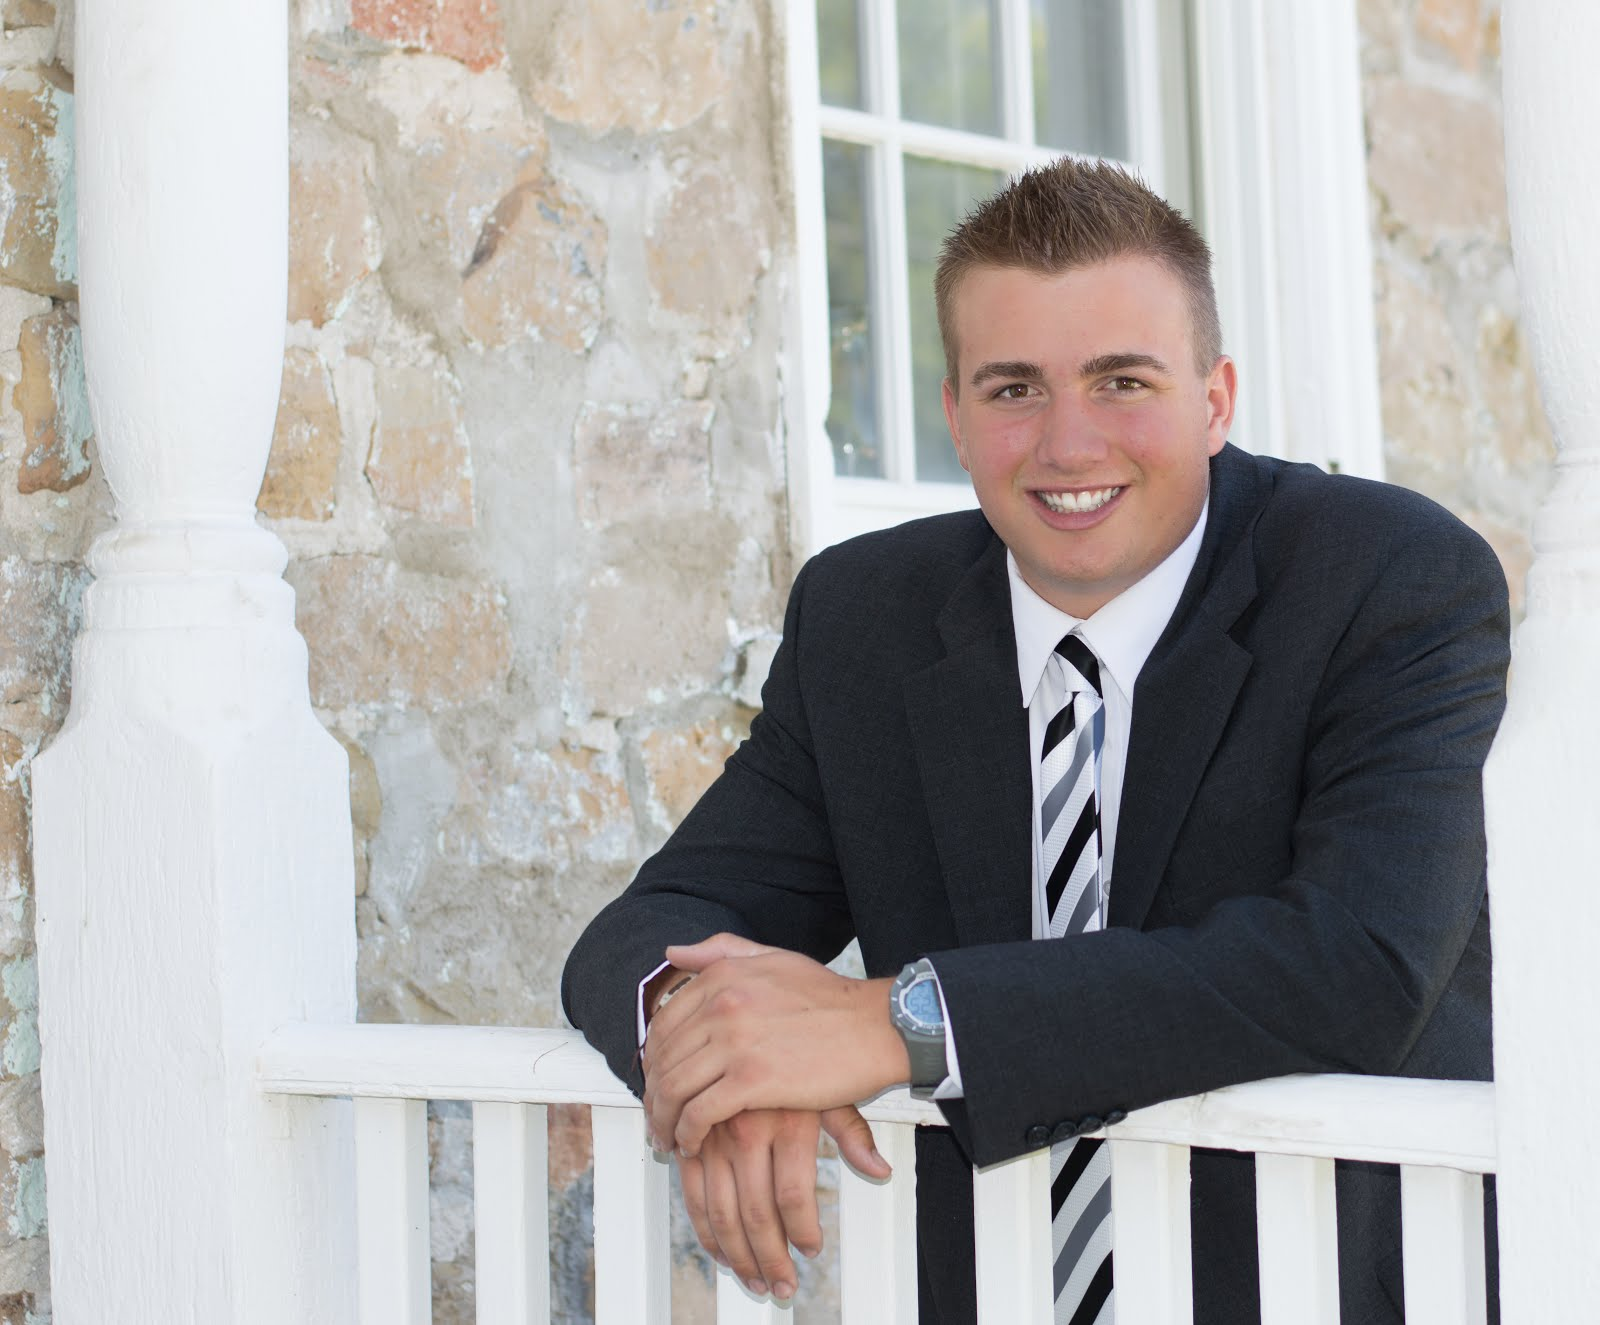 Elder Nathan Pitcher